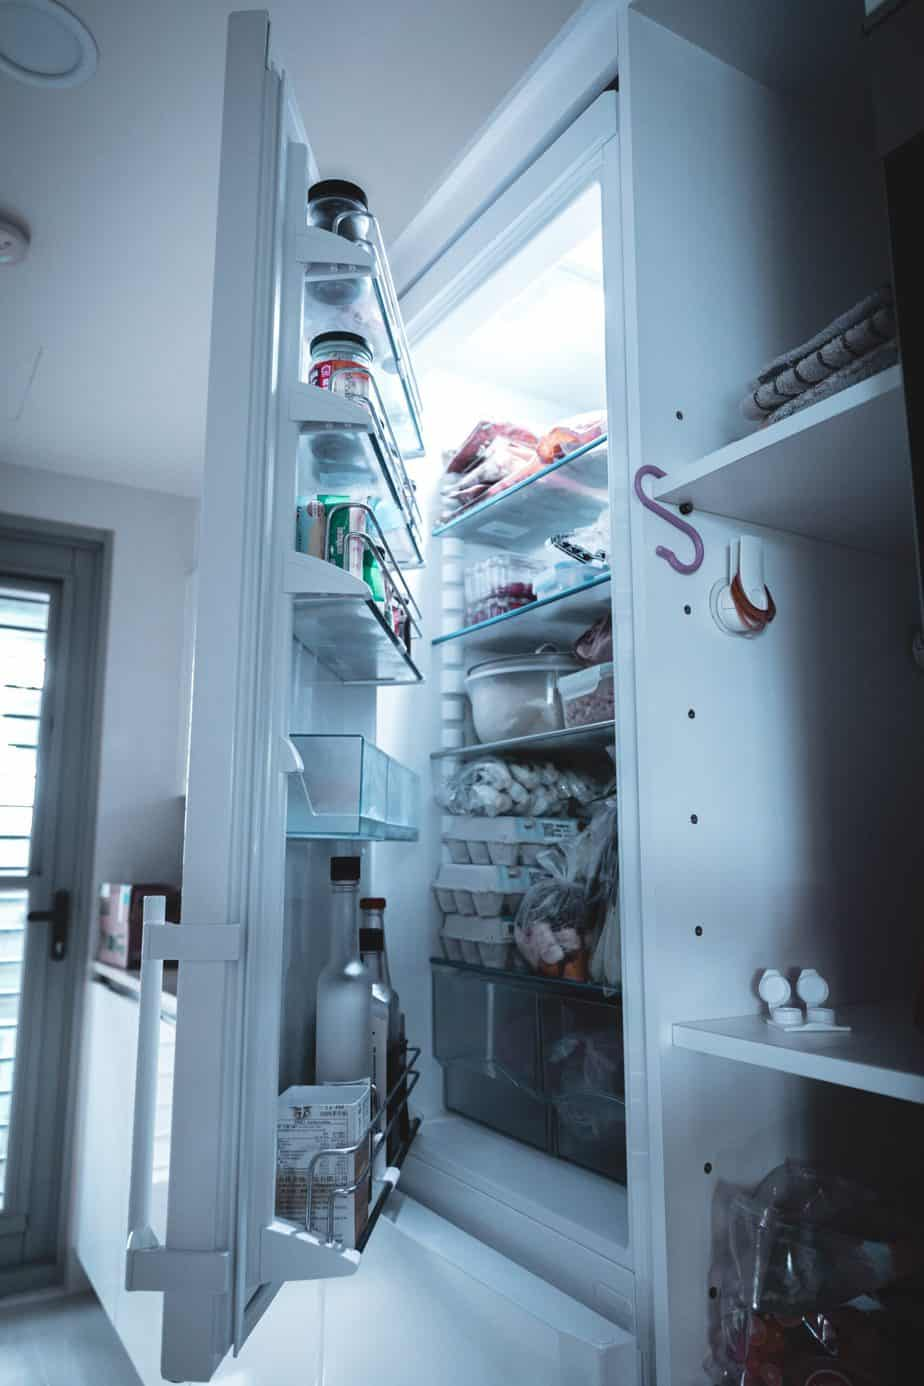 How Long Does It Take For A Refrigerator To Get Cold?